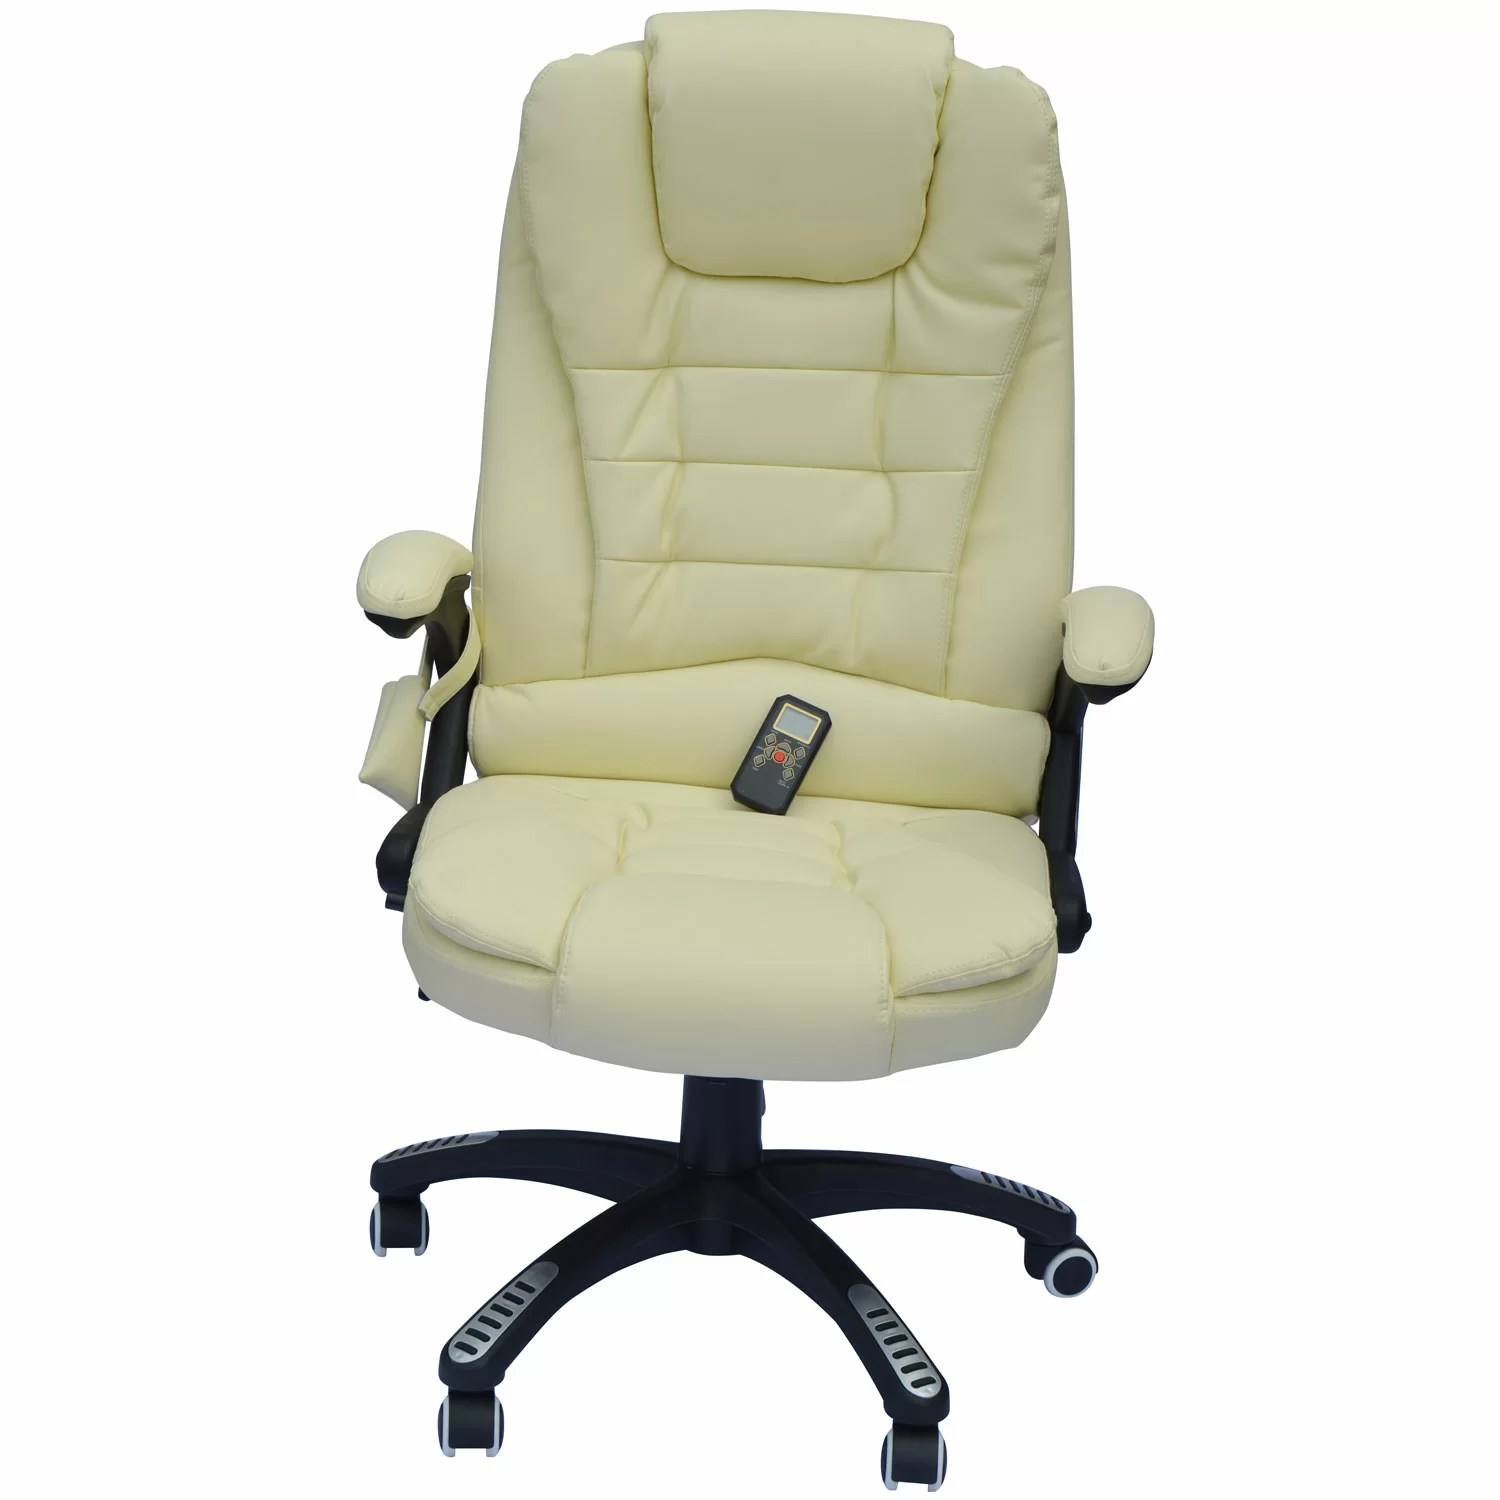 HomCom HomCom Faux Leather Heated Massage Chair  Reviews